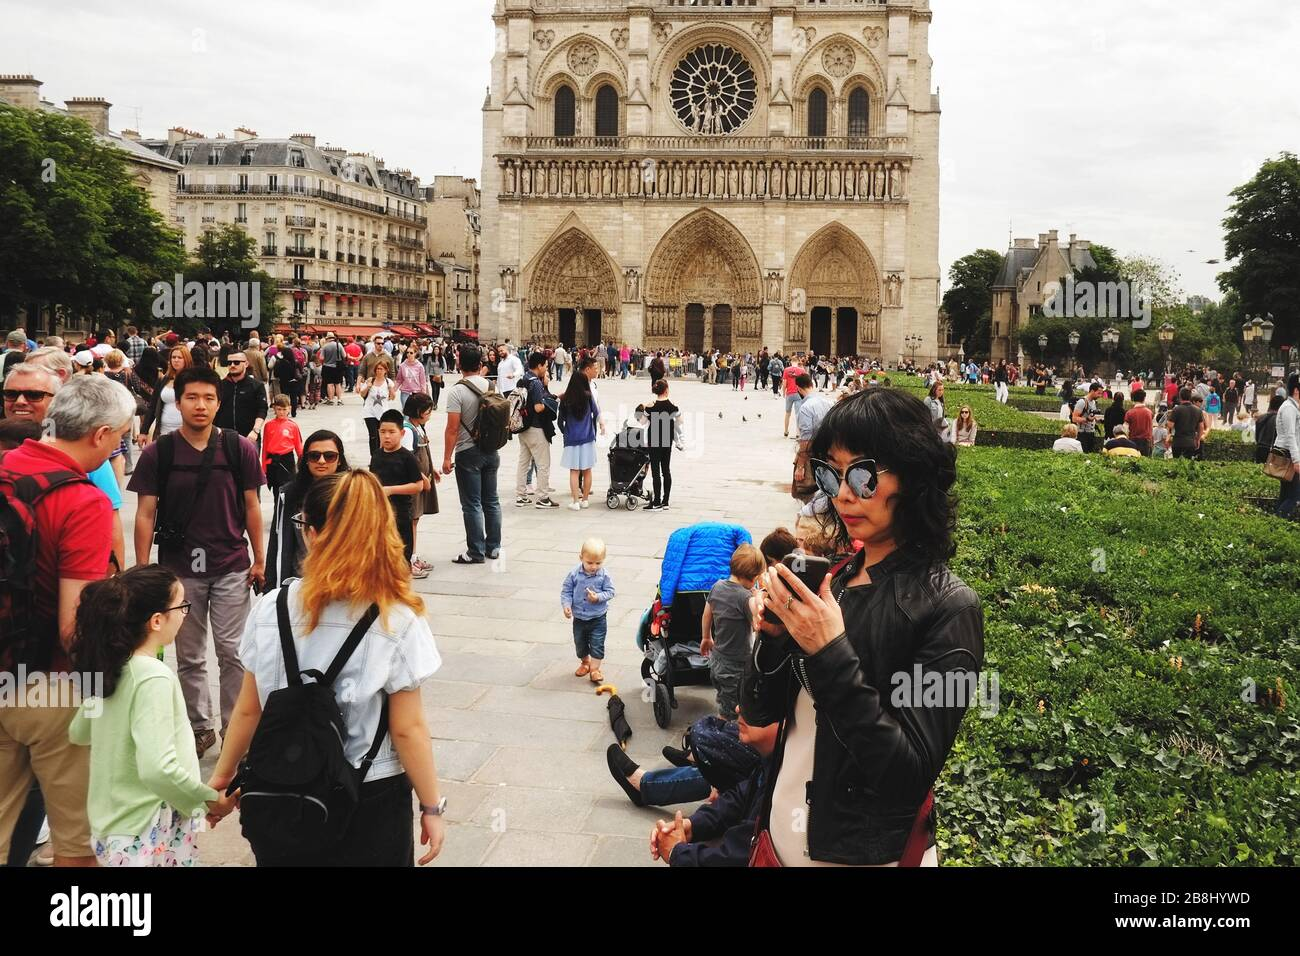 A long line of tourists waiting to enter the Cathédrale Notre-Dame de Paris and a woman checking here phone, Parvis Notre-Dame - Pl. Jean-Paul II. Stock Photo